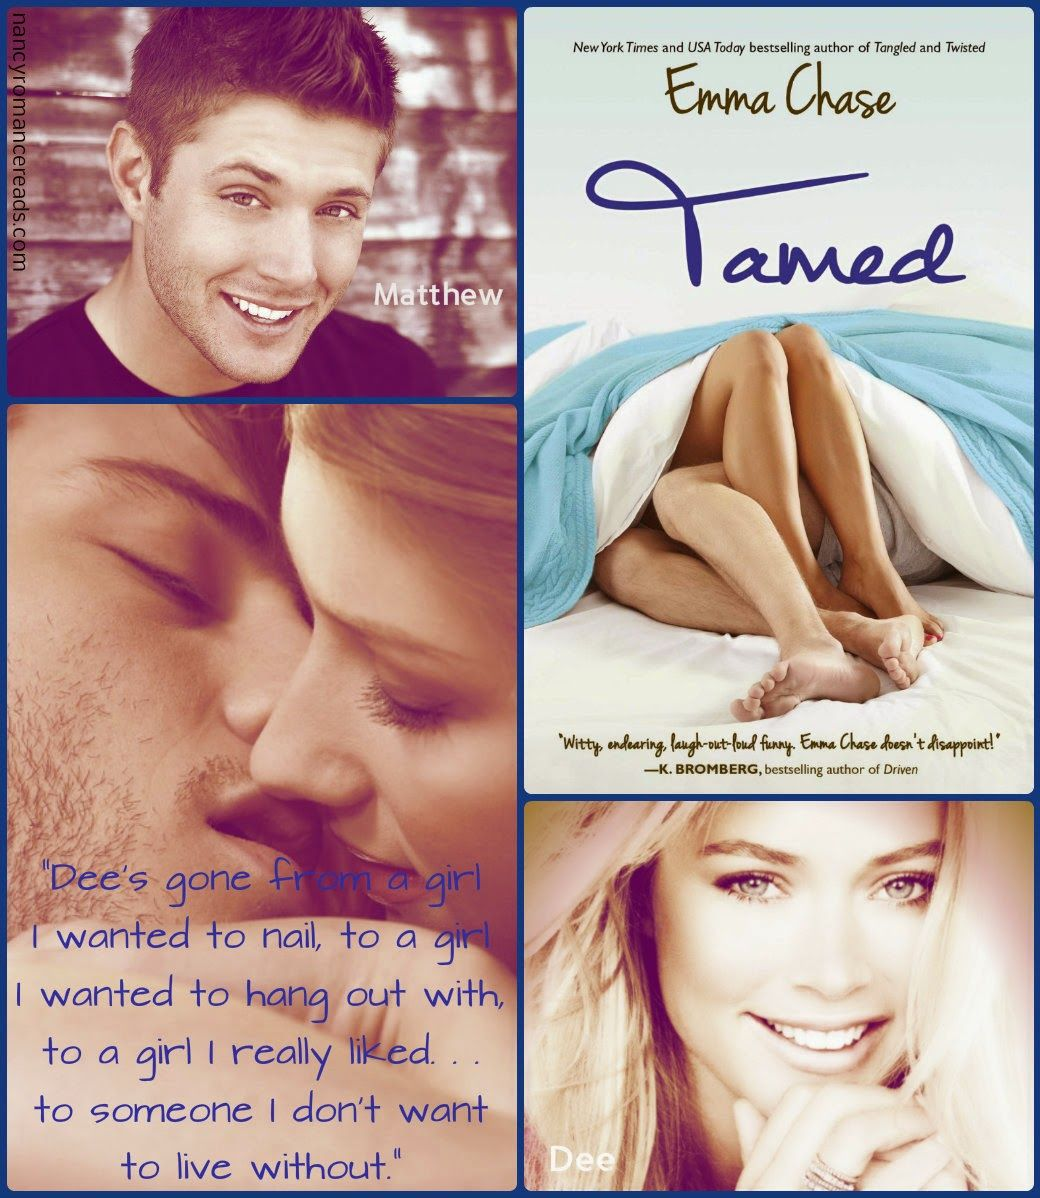 Nancy's Romance Reads: Book Review: Tamed By Emma Chase